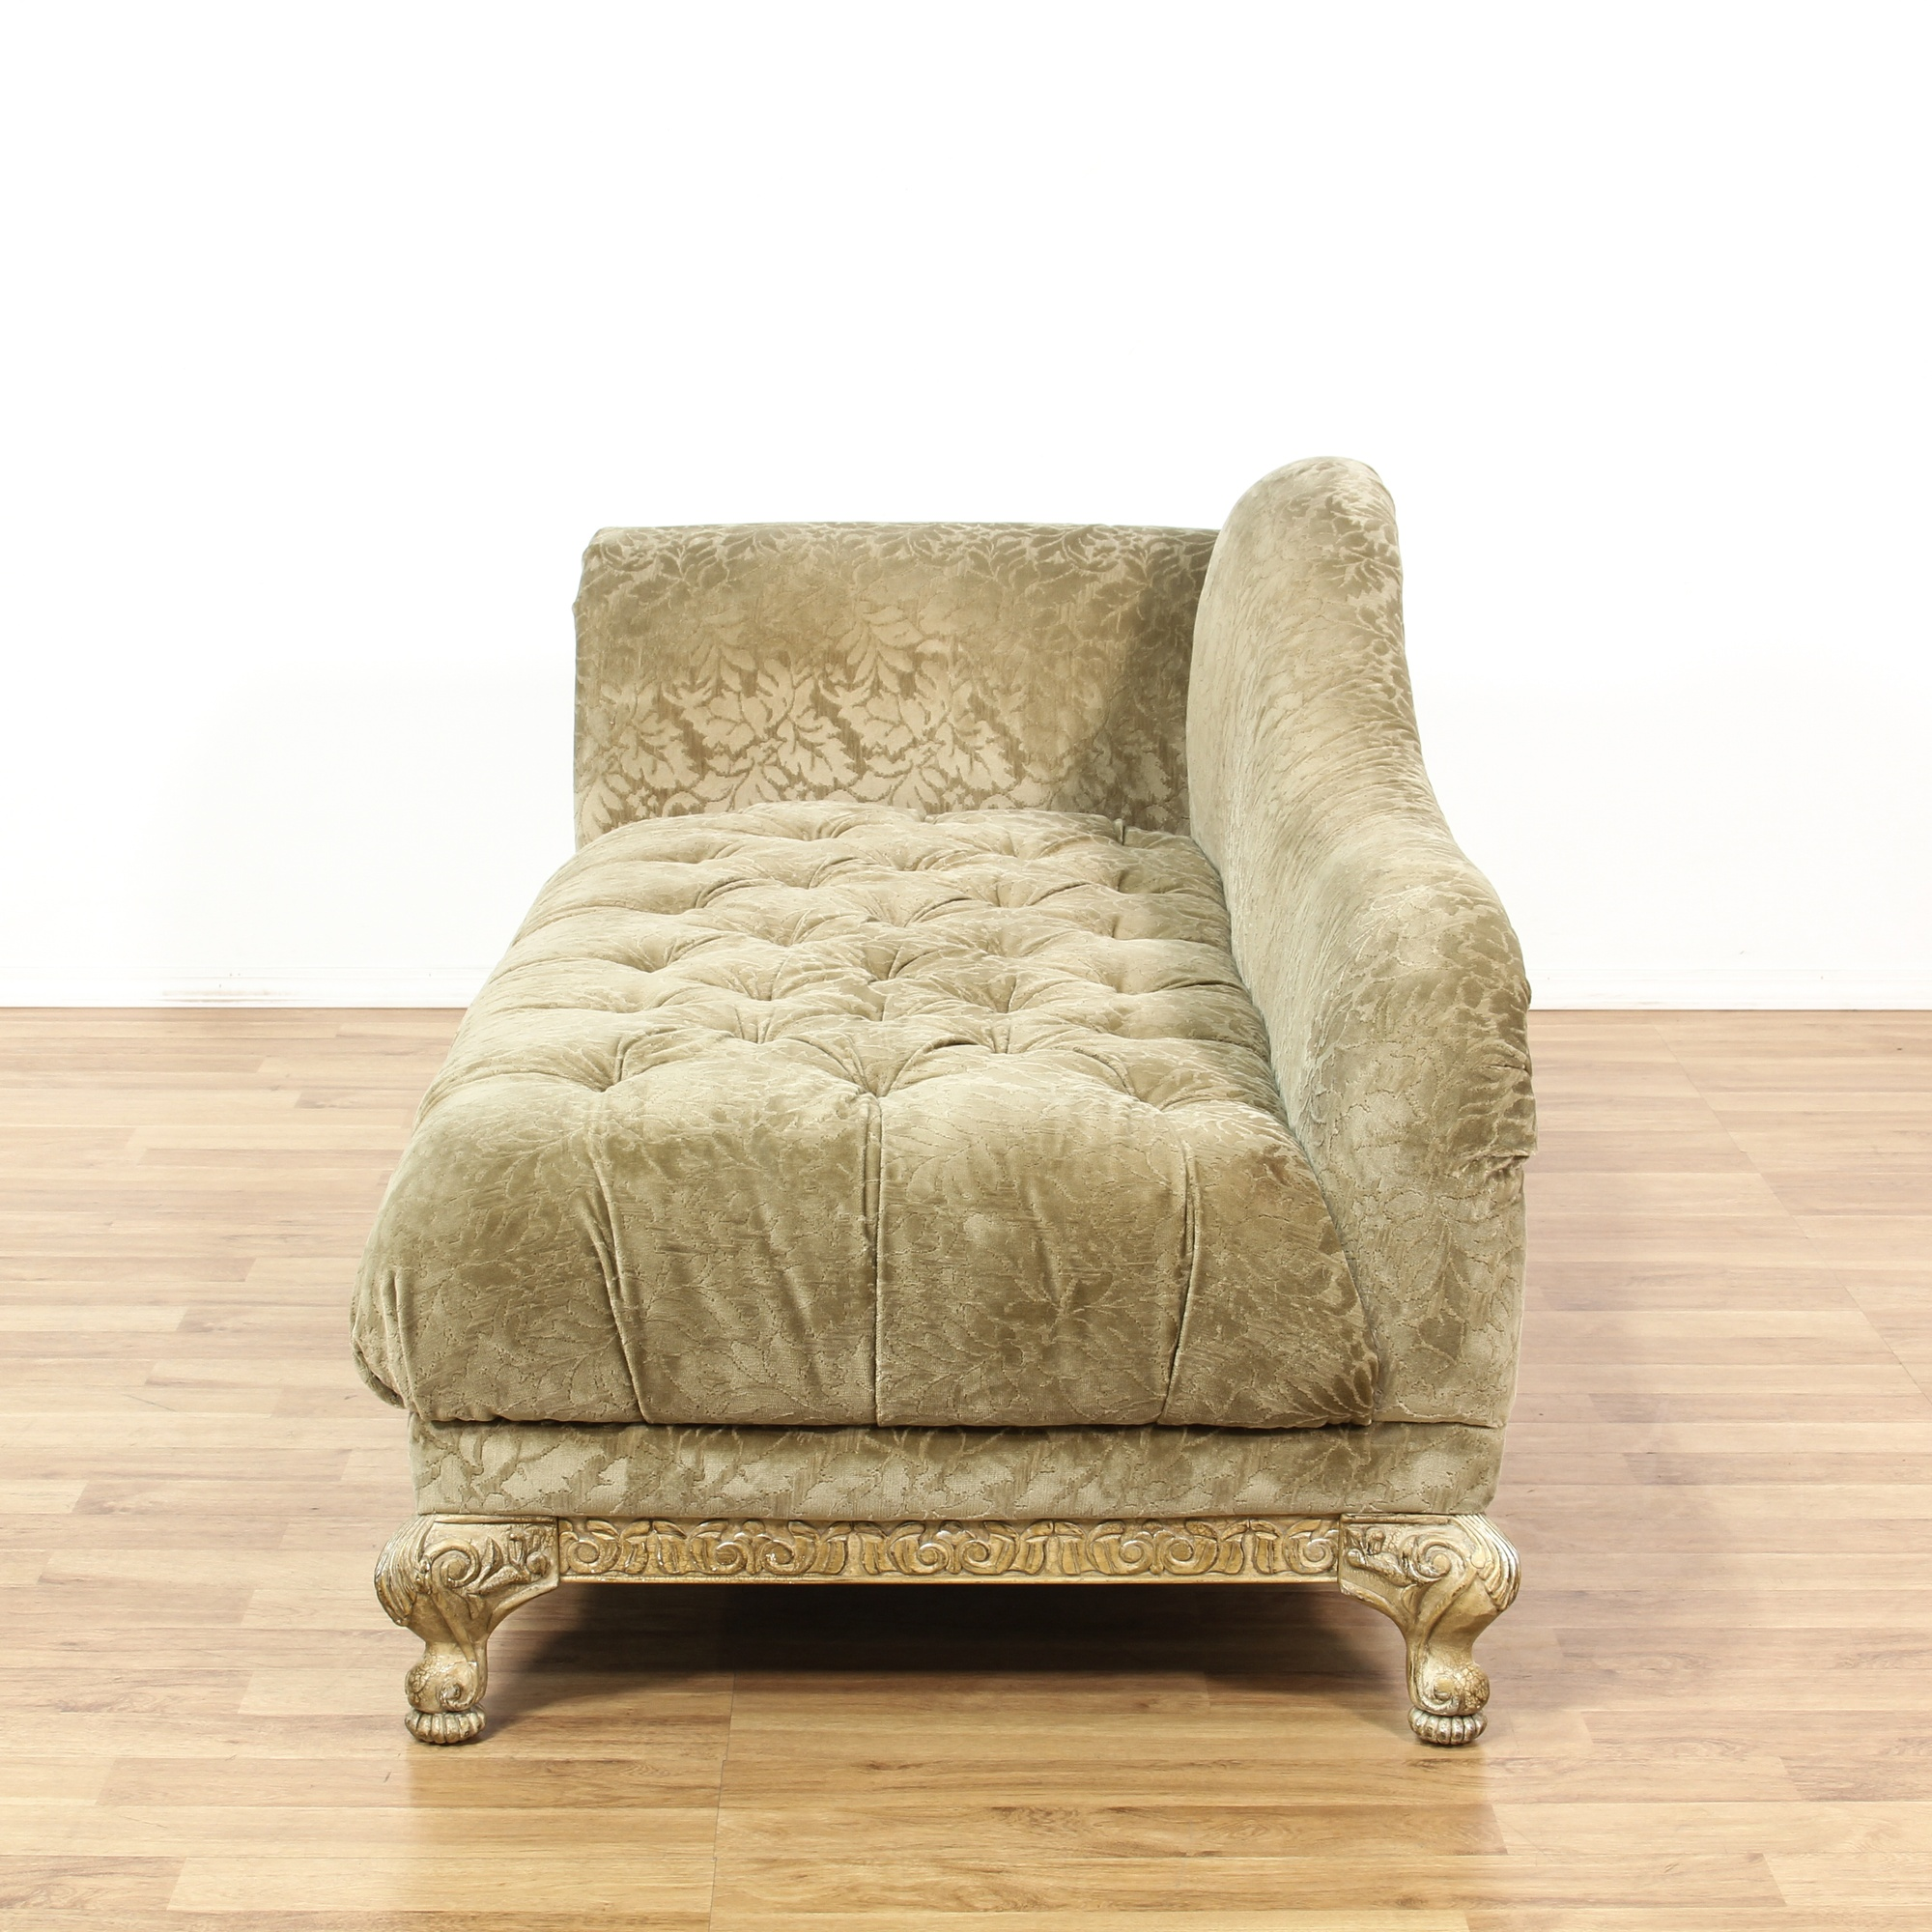 Carved cream tufted chaise lounge loveseat vintage for Carved wooden chaise